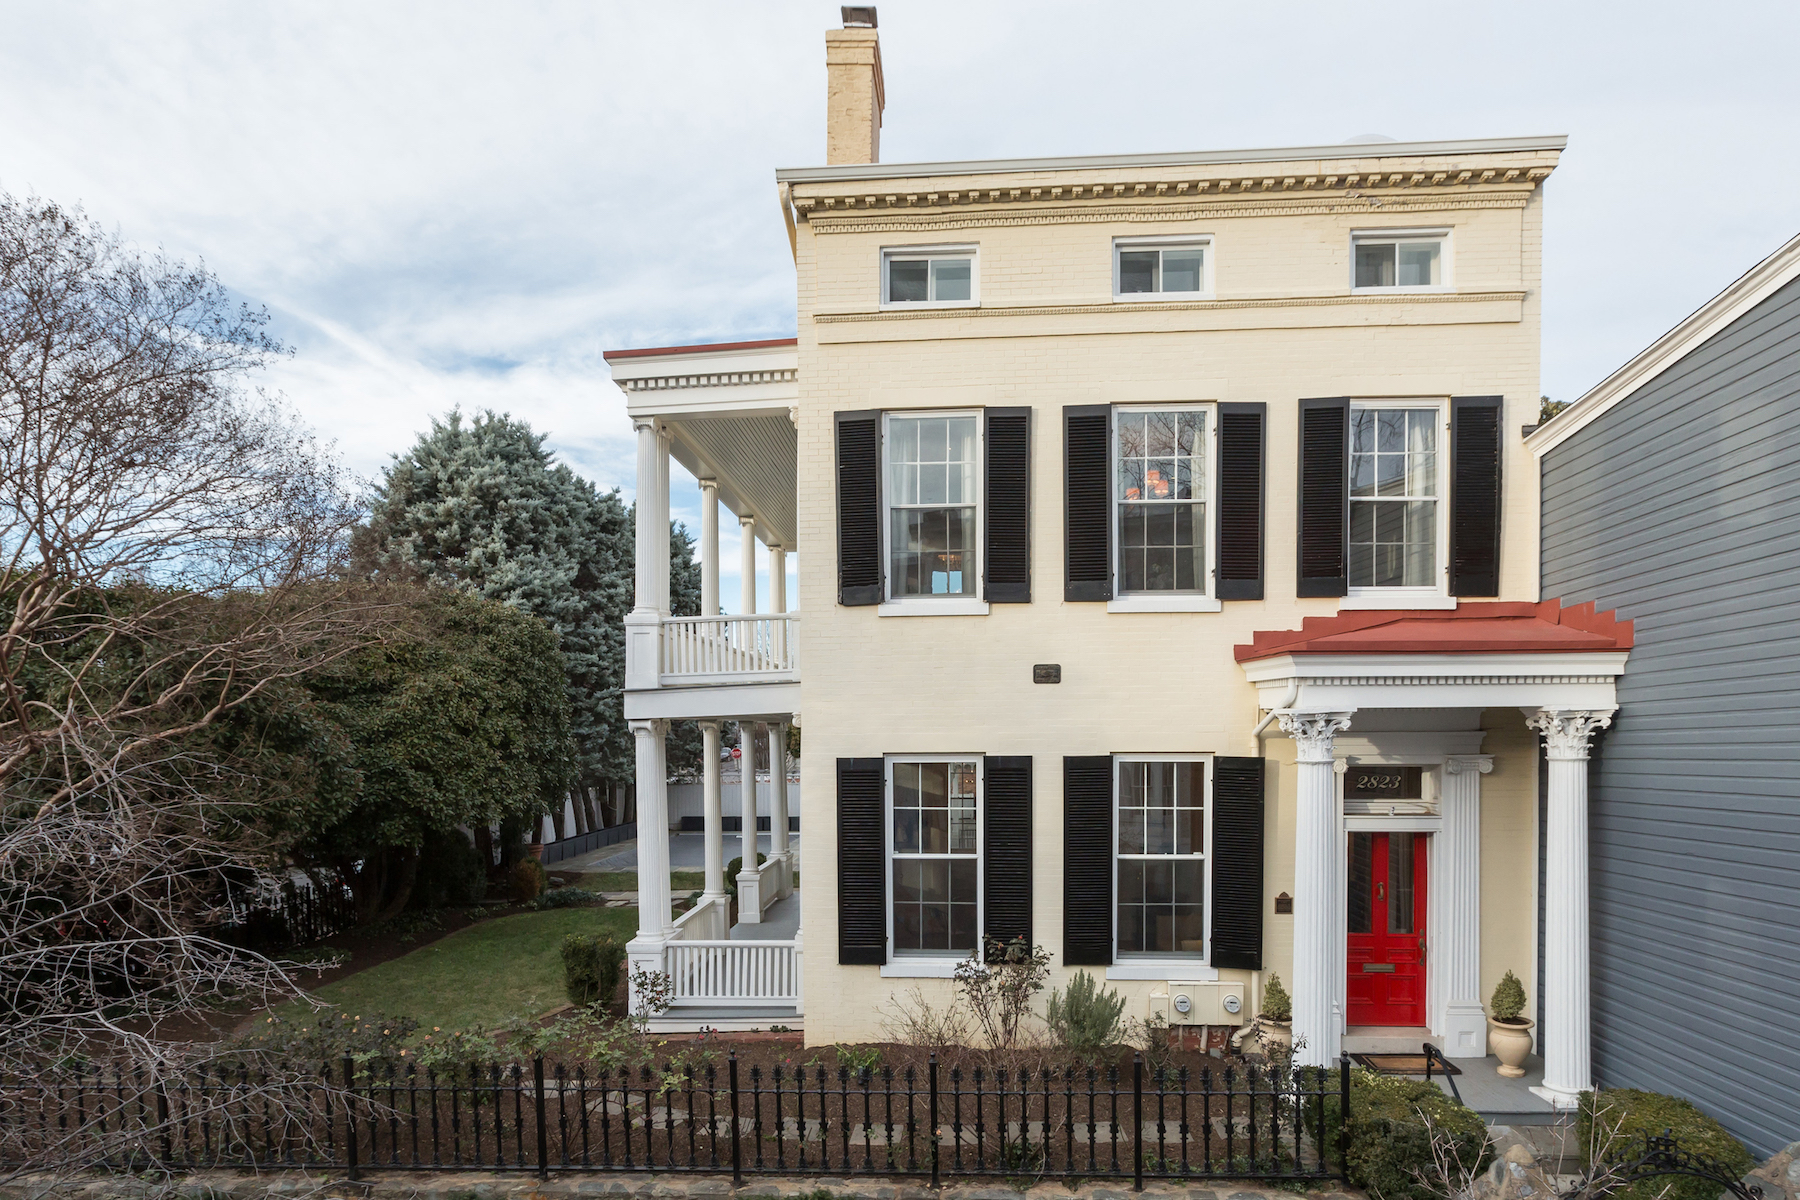 Townhouse for Sale at Georgetown 2823 N Street NW Georgetown, Washington, District Of Columbia 20007 United States